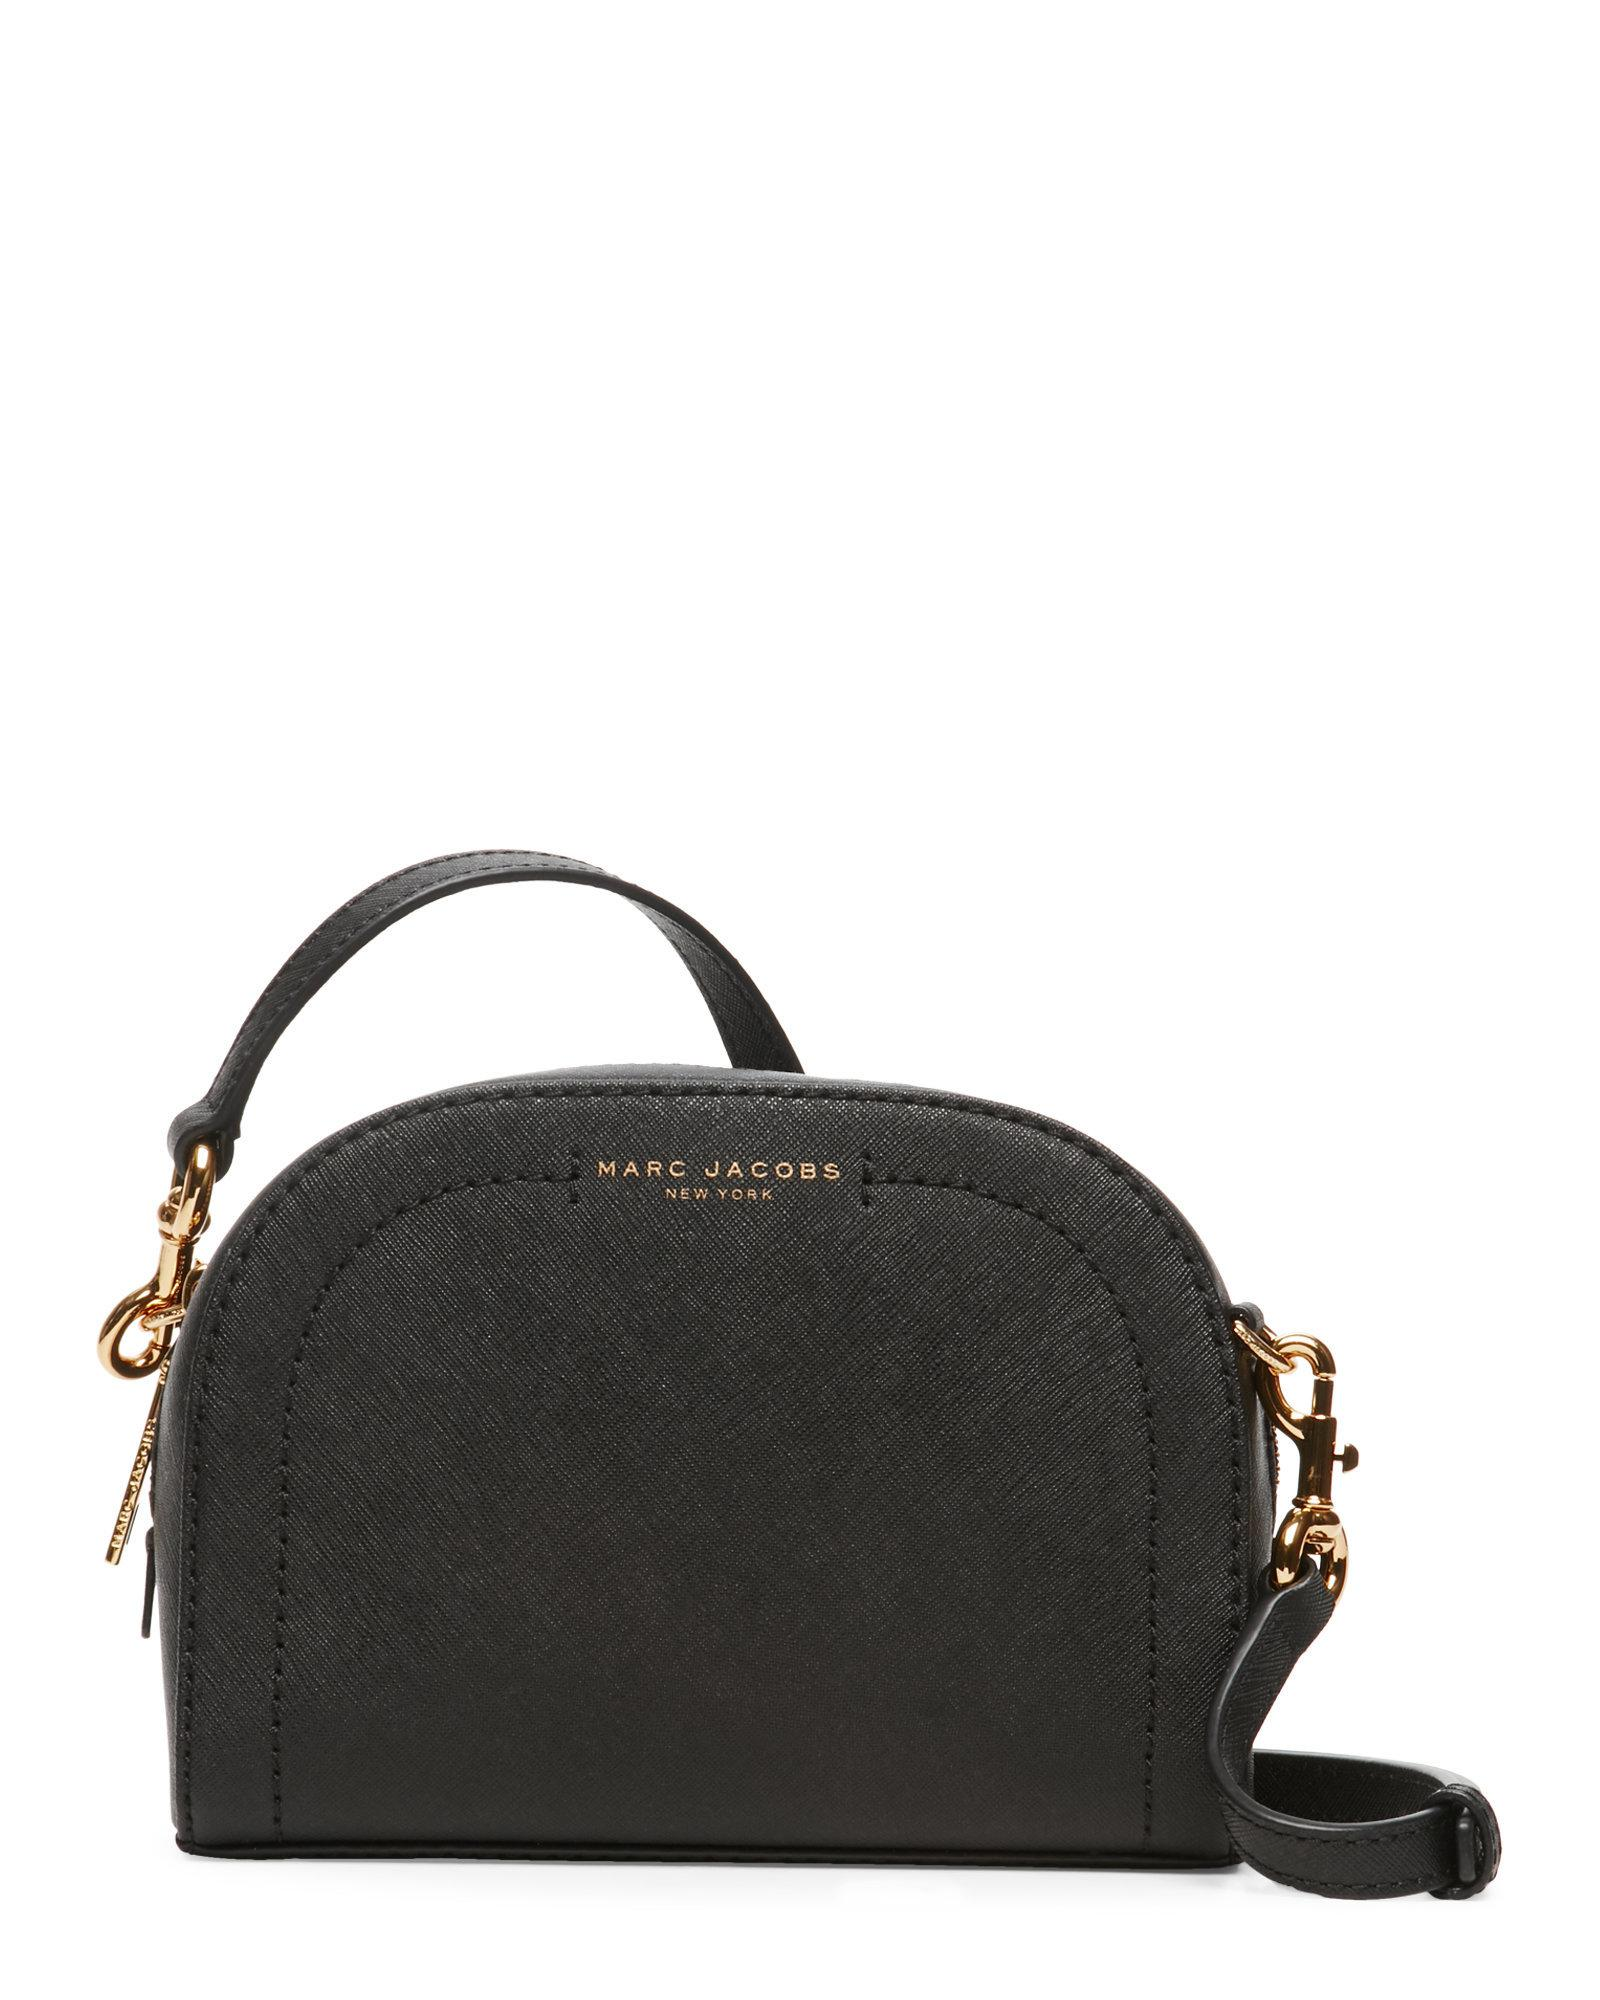 73e88655e Marc Jacobs Black Playback Crossbody in Black - Lyst